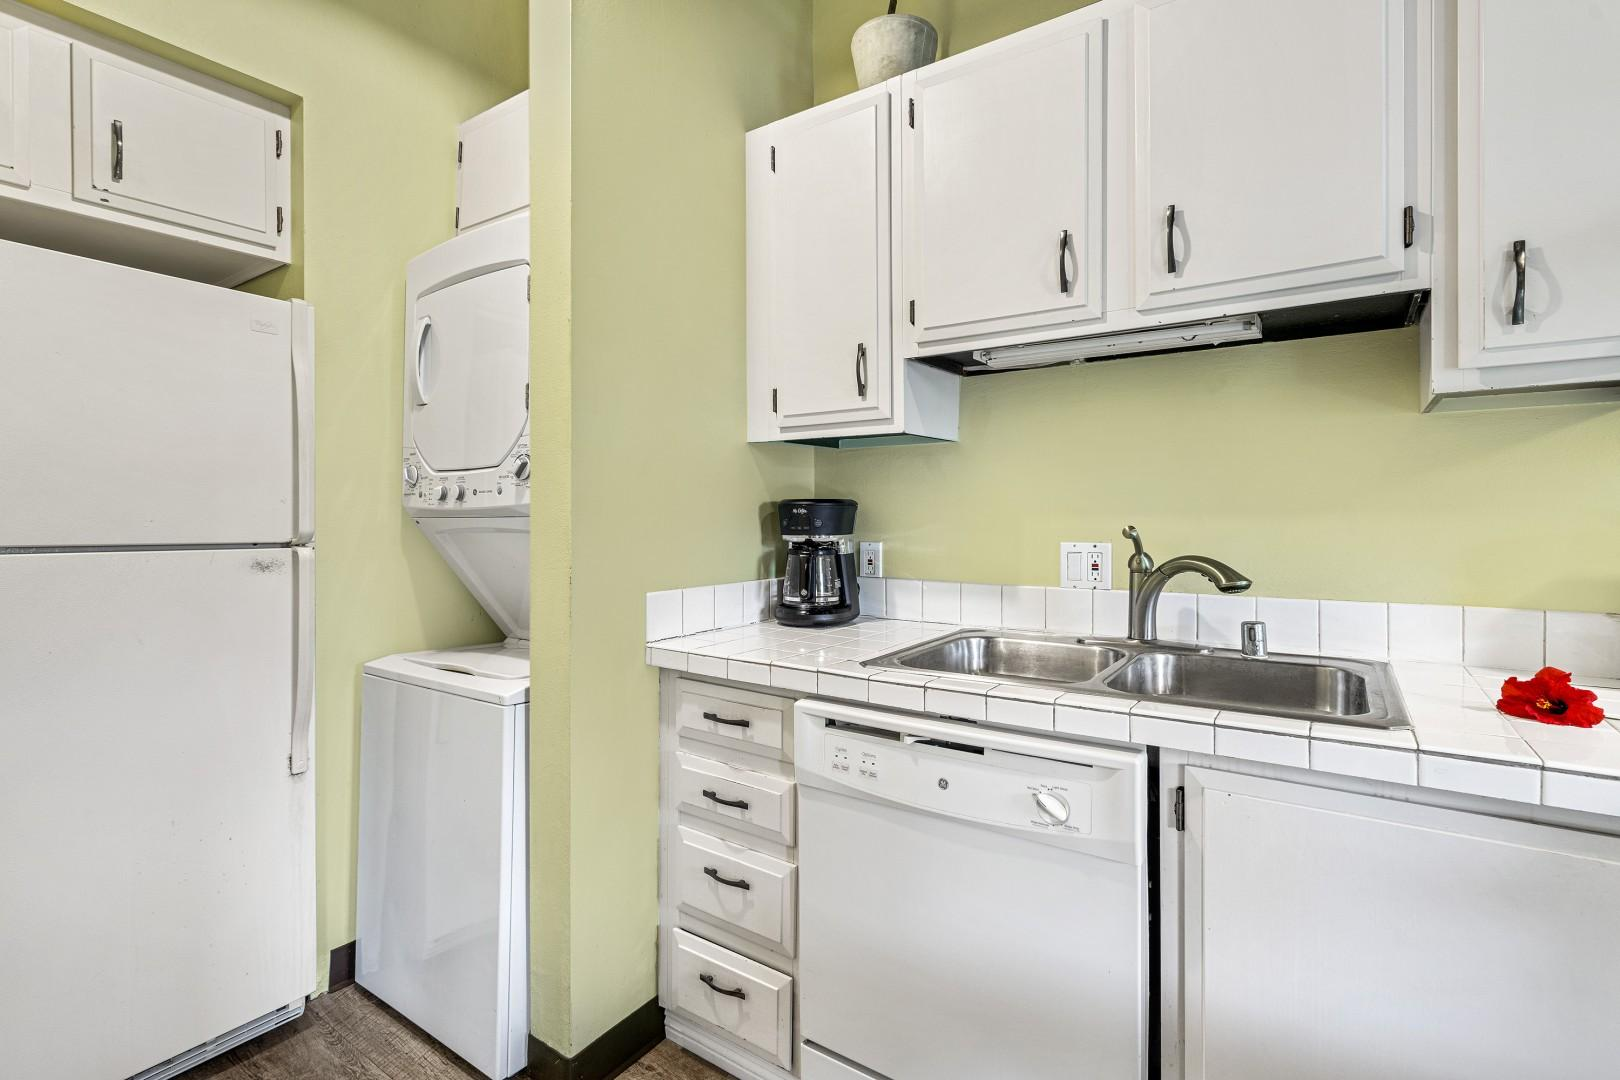 Unit is equipped with a washer/dryer